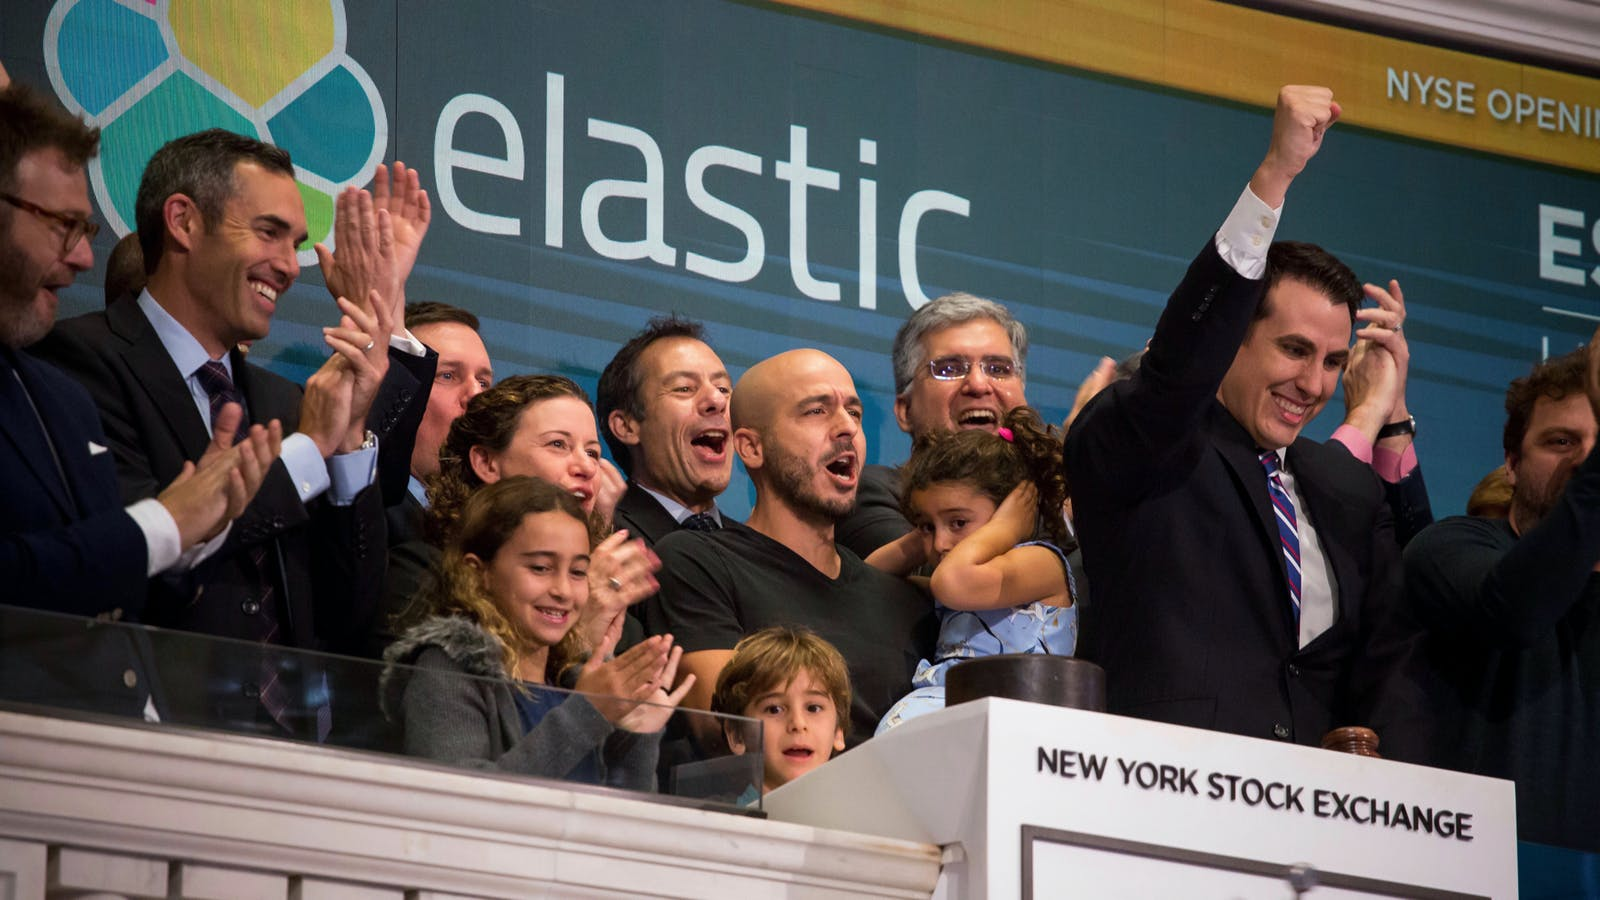 Elastic executives celebrate the company's initial public offering earlier this month. Photo by Bloomberg